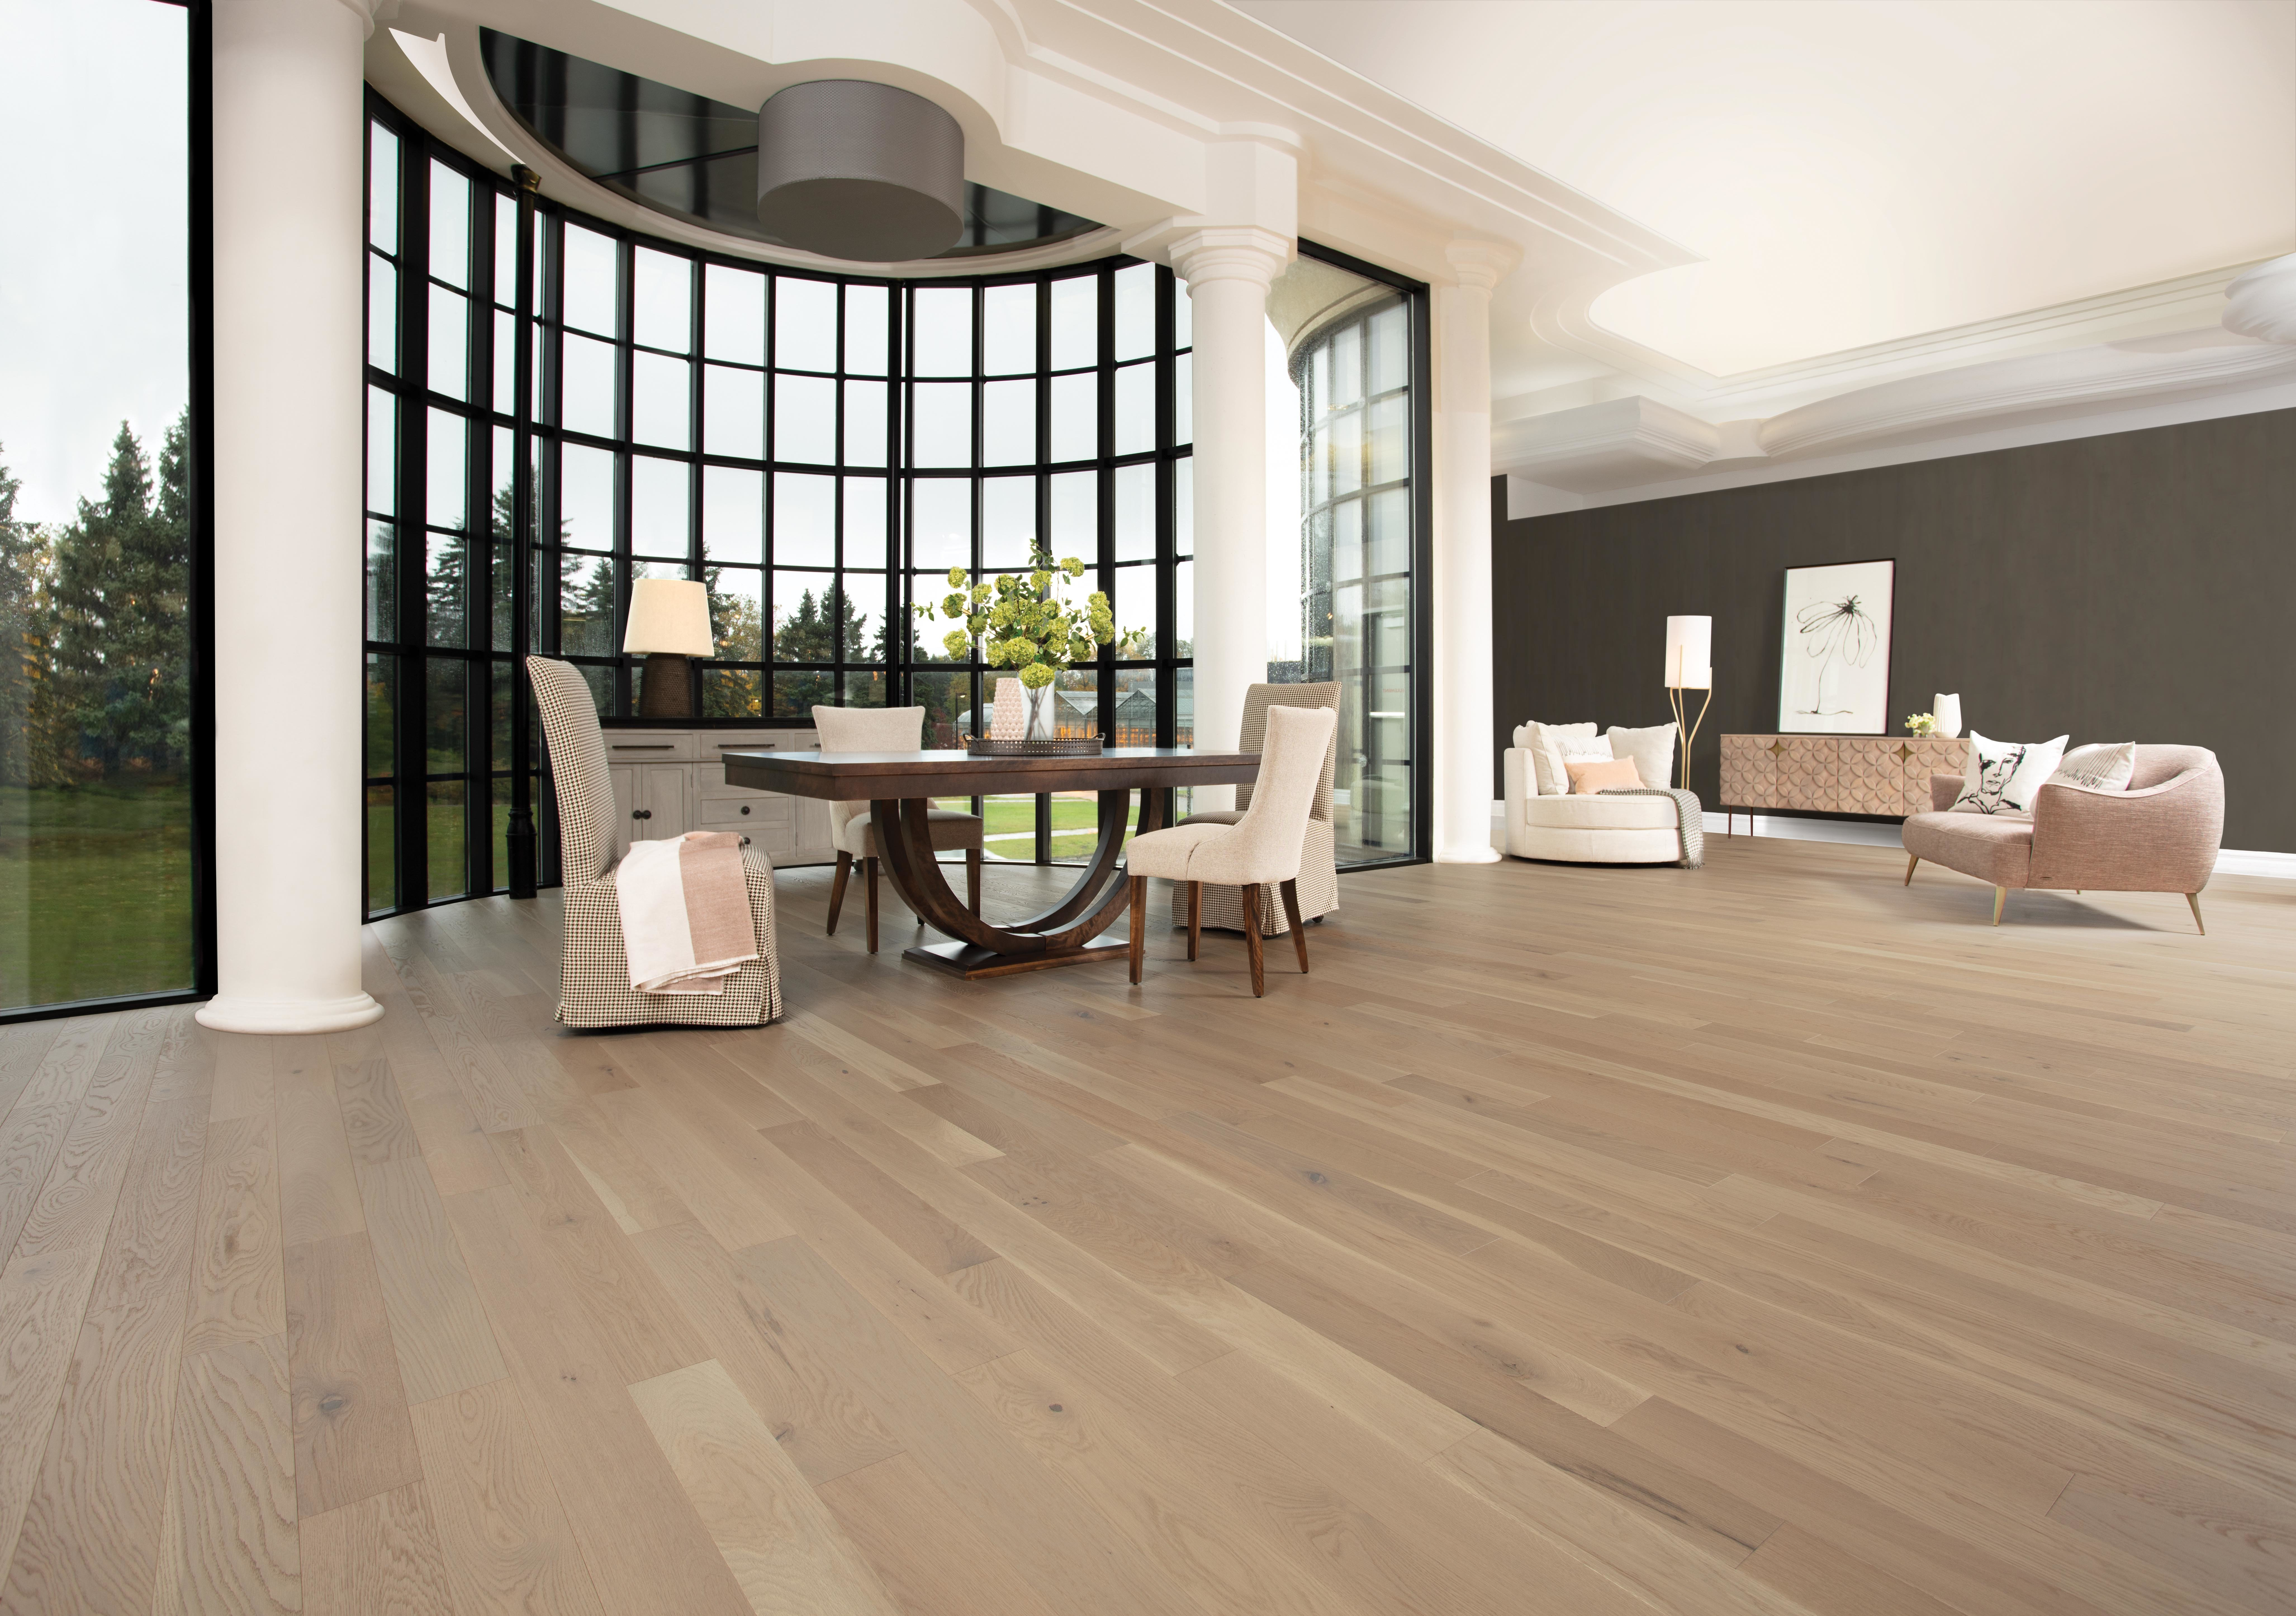 White Oak Stardust Character Brushed - Ambience image